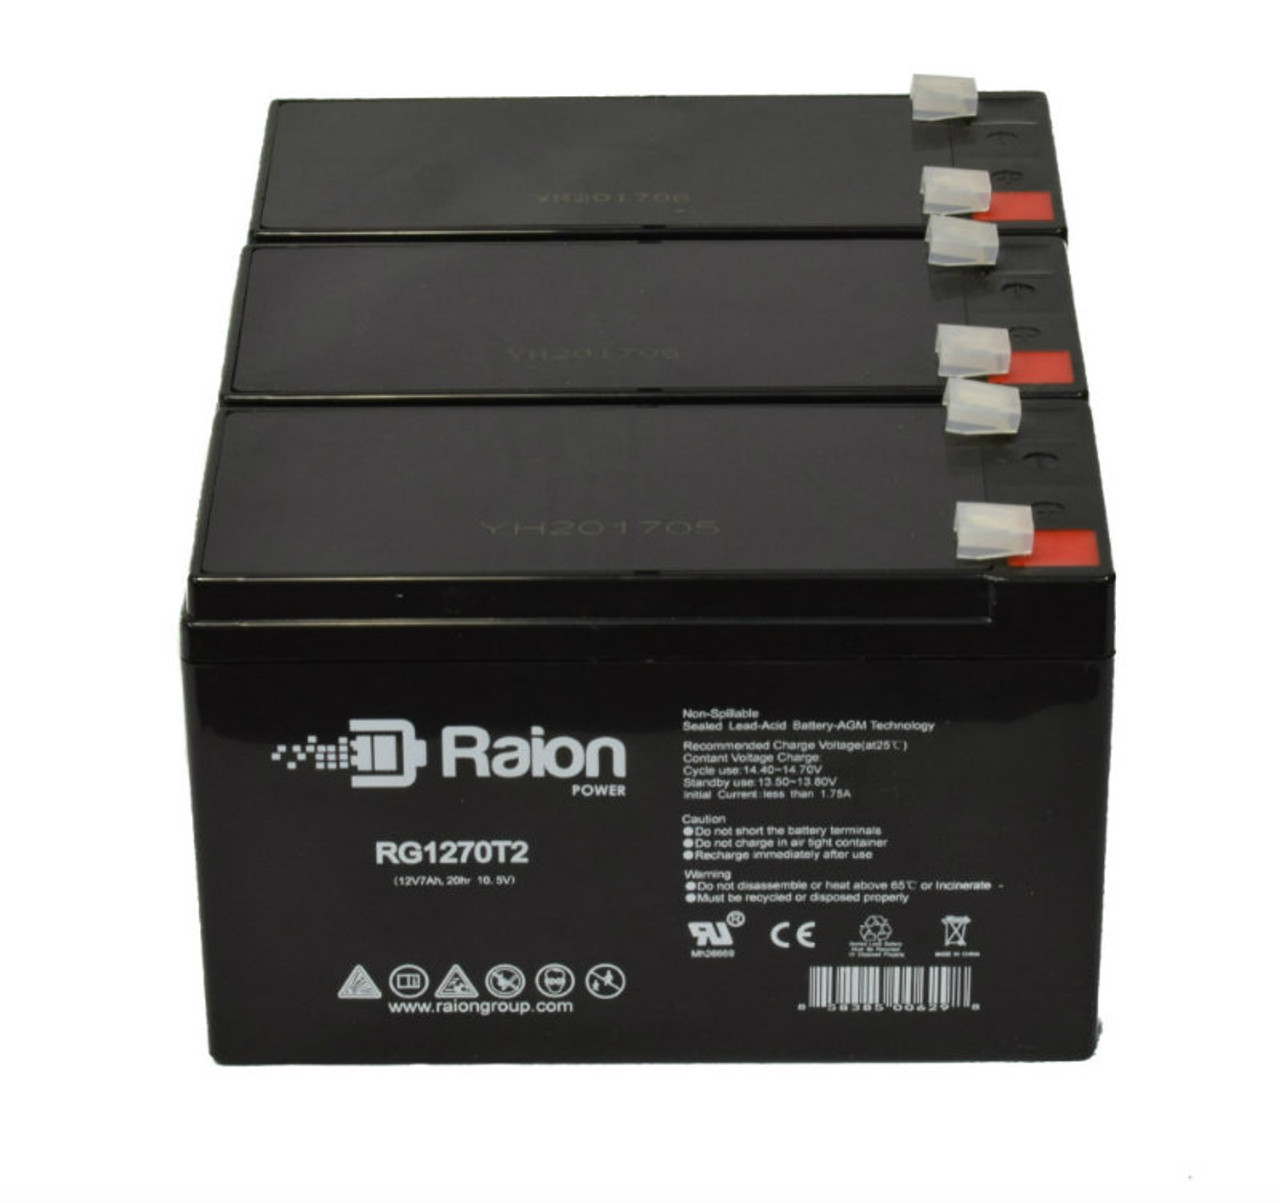 Raion Power RG1270T1 Replacement Battery Pack For Alexander G1270 - (3 Pack)